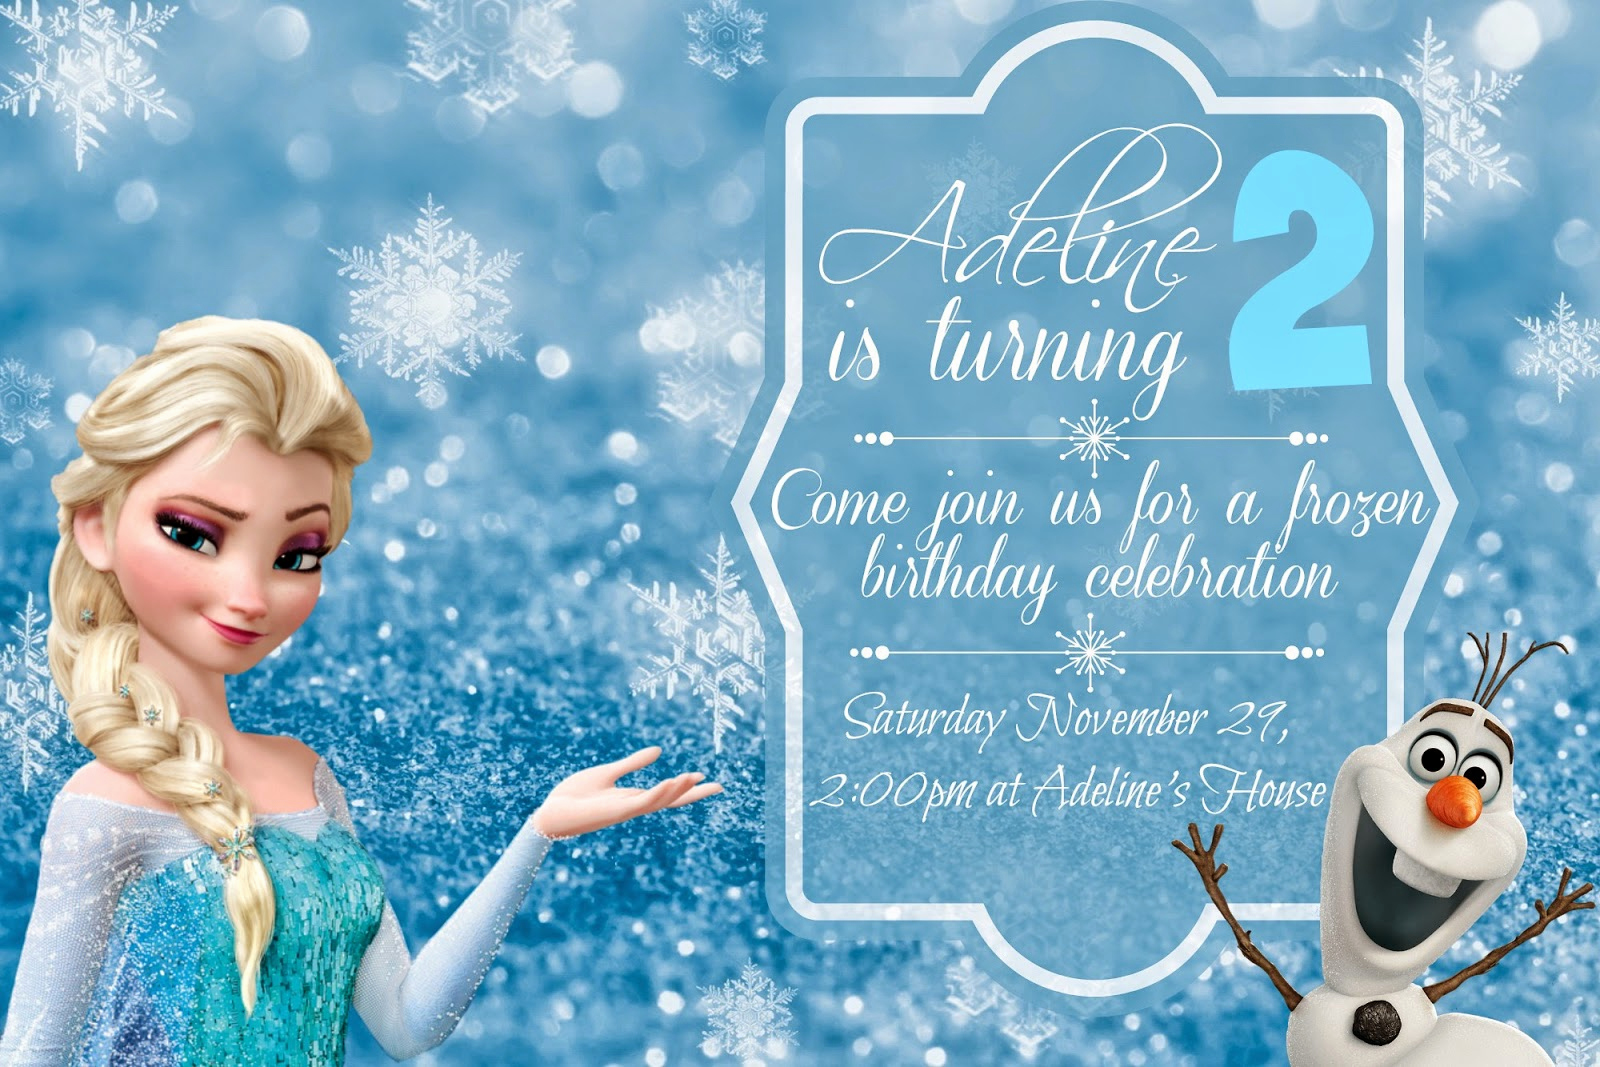 Frozen Birthday Party Invitation Template Inspirational orchard Girls Free Frozen Birthday Party Invitations and